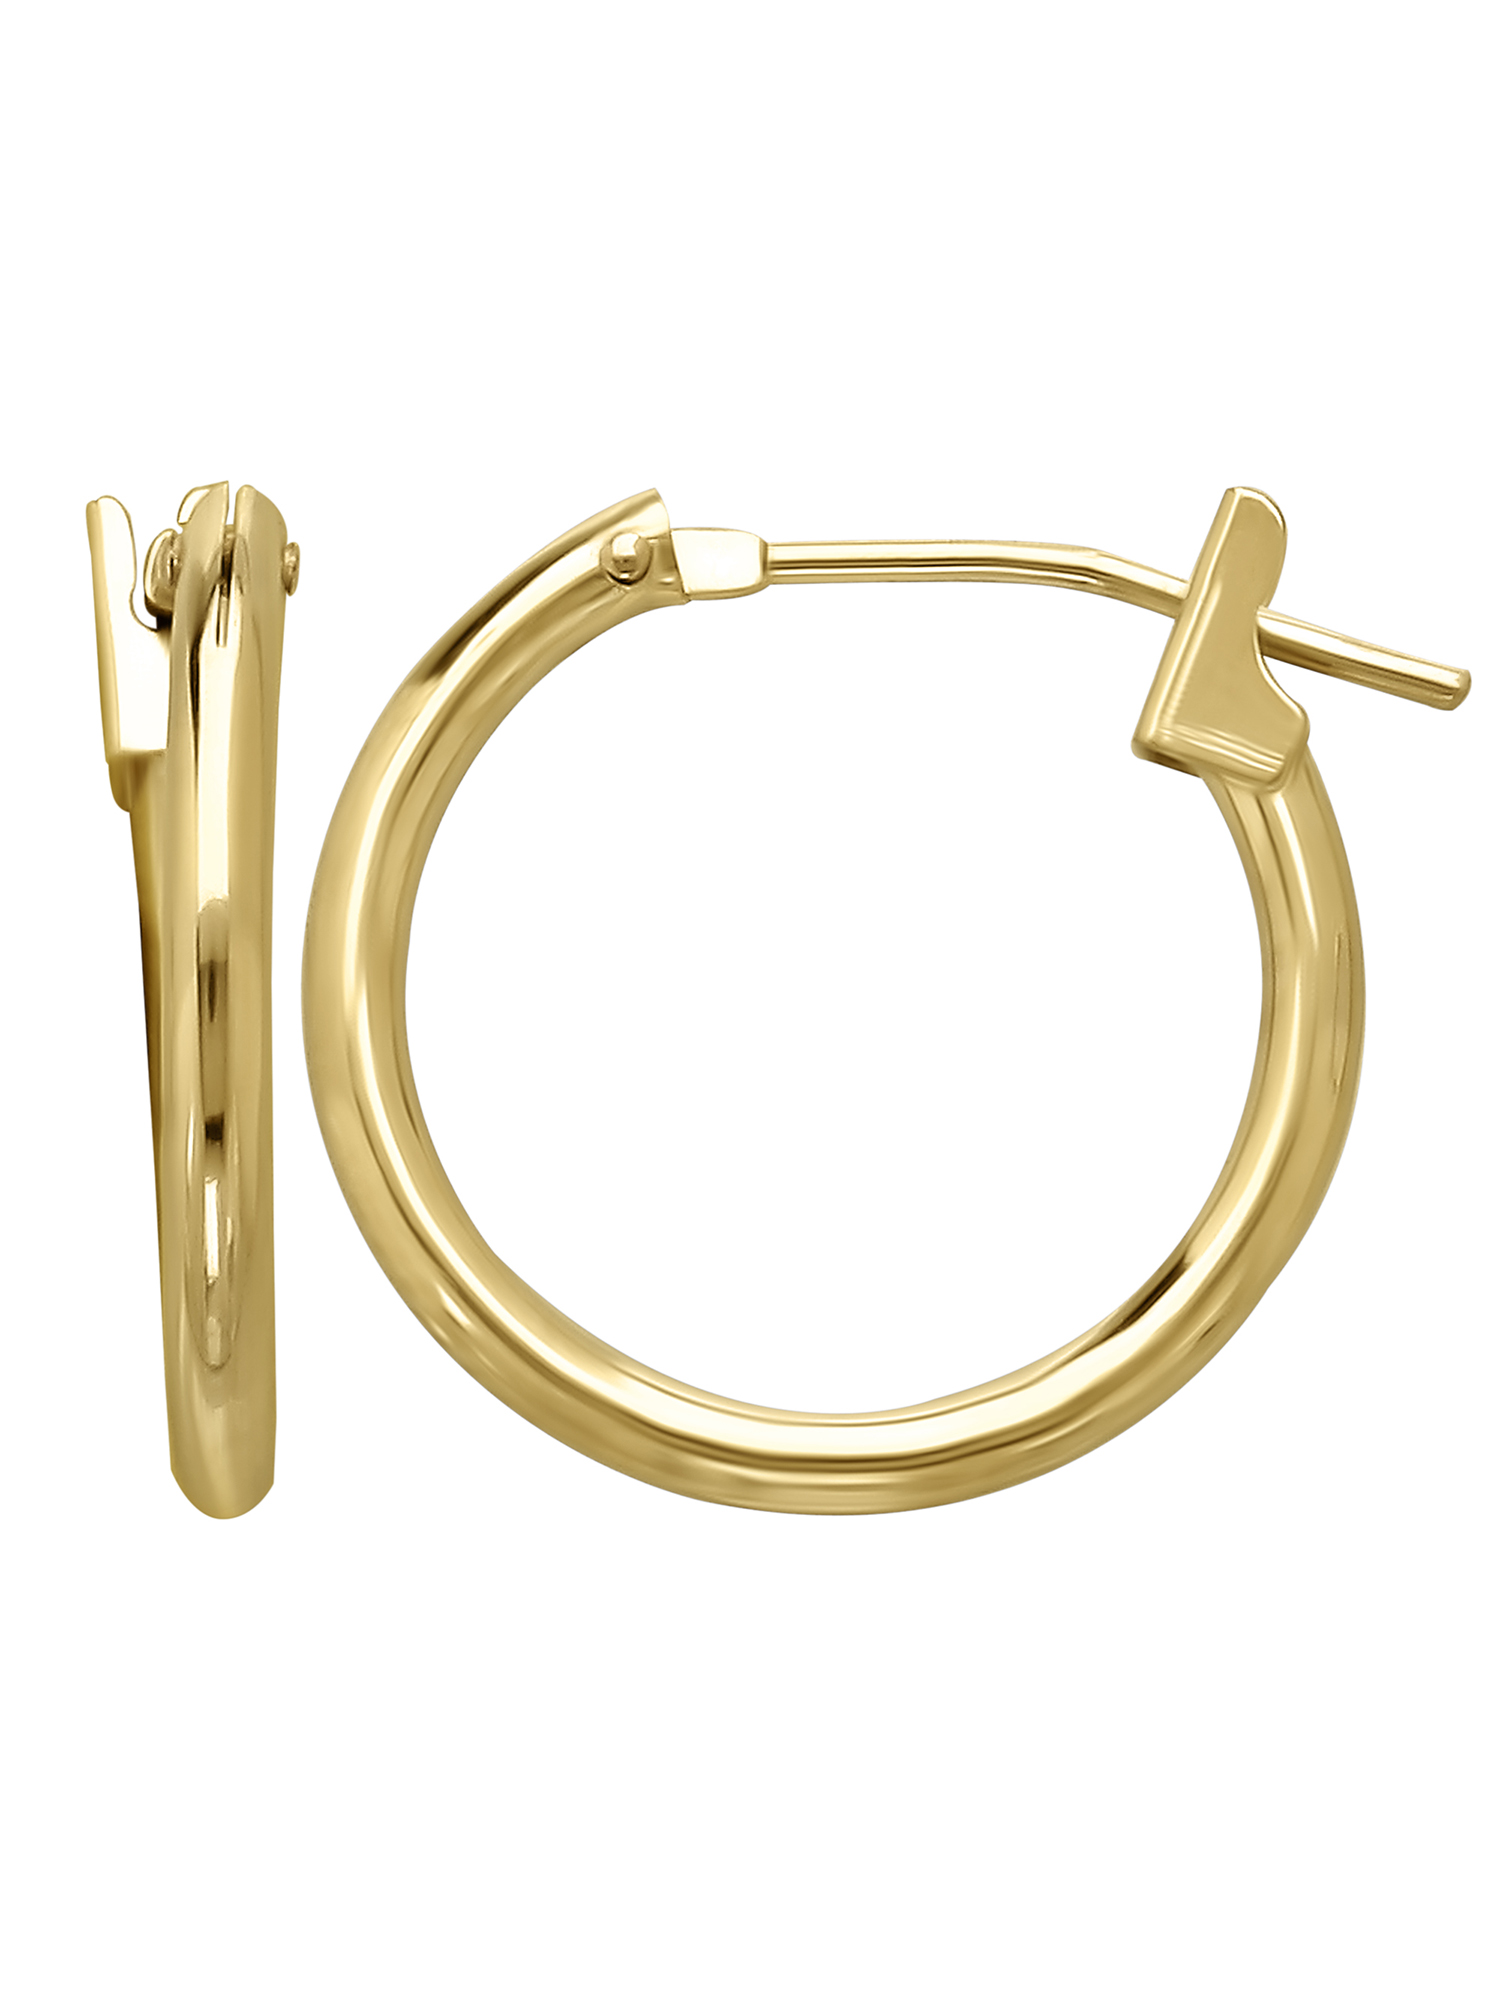 Simply Gold™ 14K Yellow Gold 1.5mm x 15mm Hoop Earrings